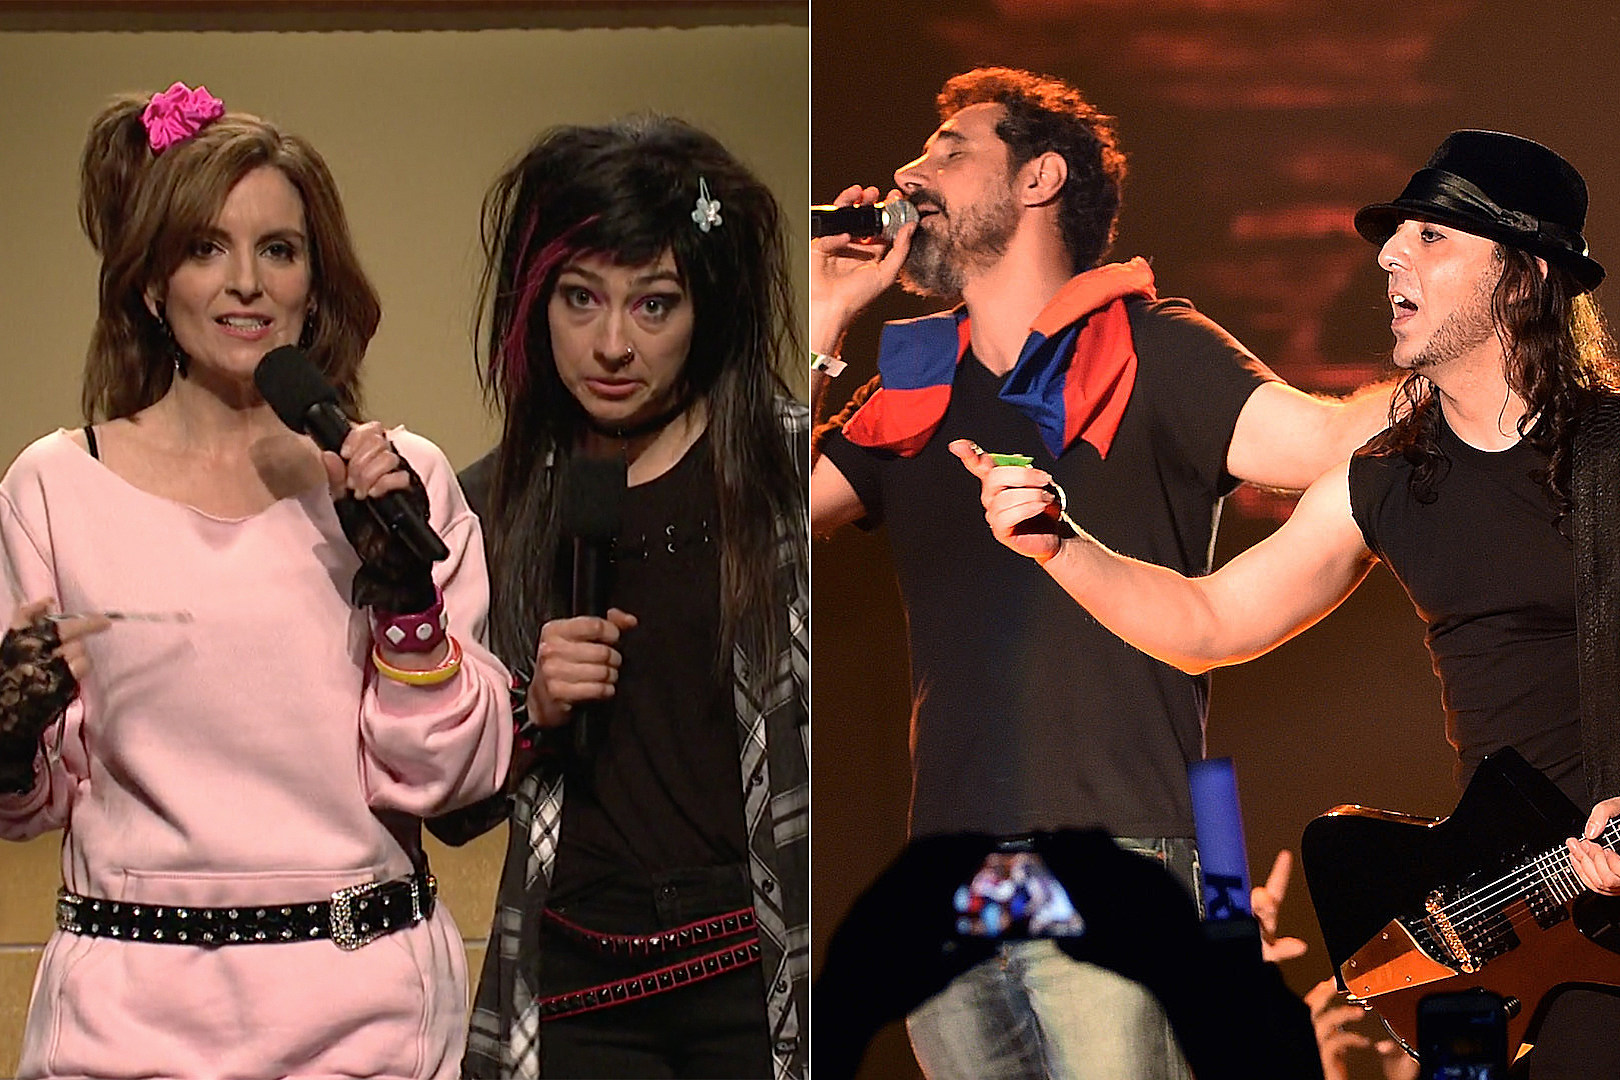 Tina Fey + Melissa Villasenor Sing System of a Down on 'Saturday Night Live'